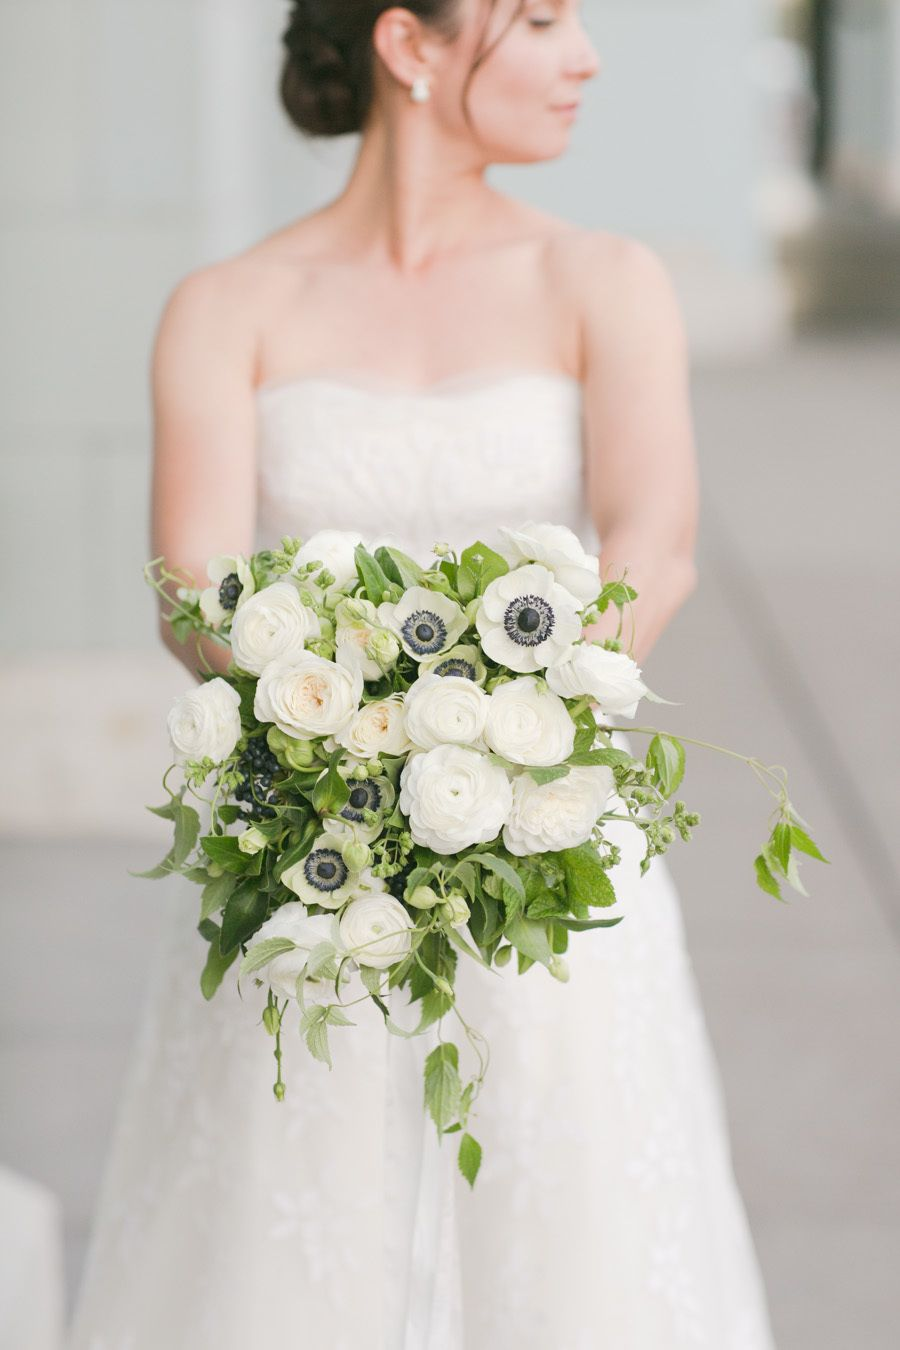 Gorgeous white anemone and peony wedding bouquet: Photography : Julie Mikos - http://www.juliemikos.com/